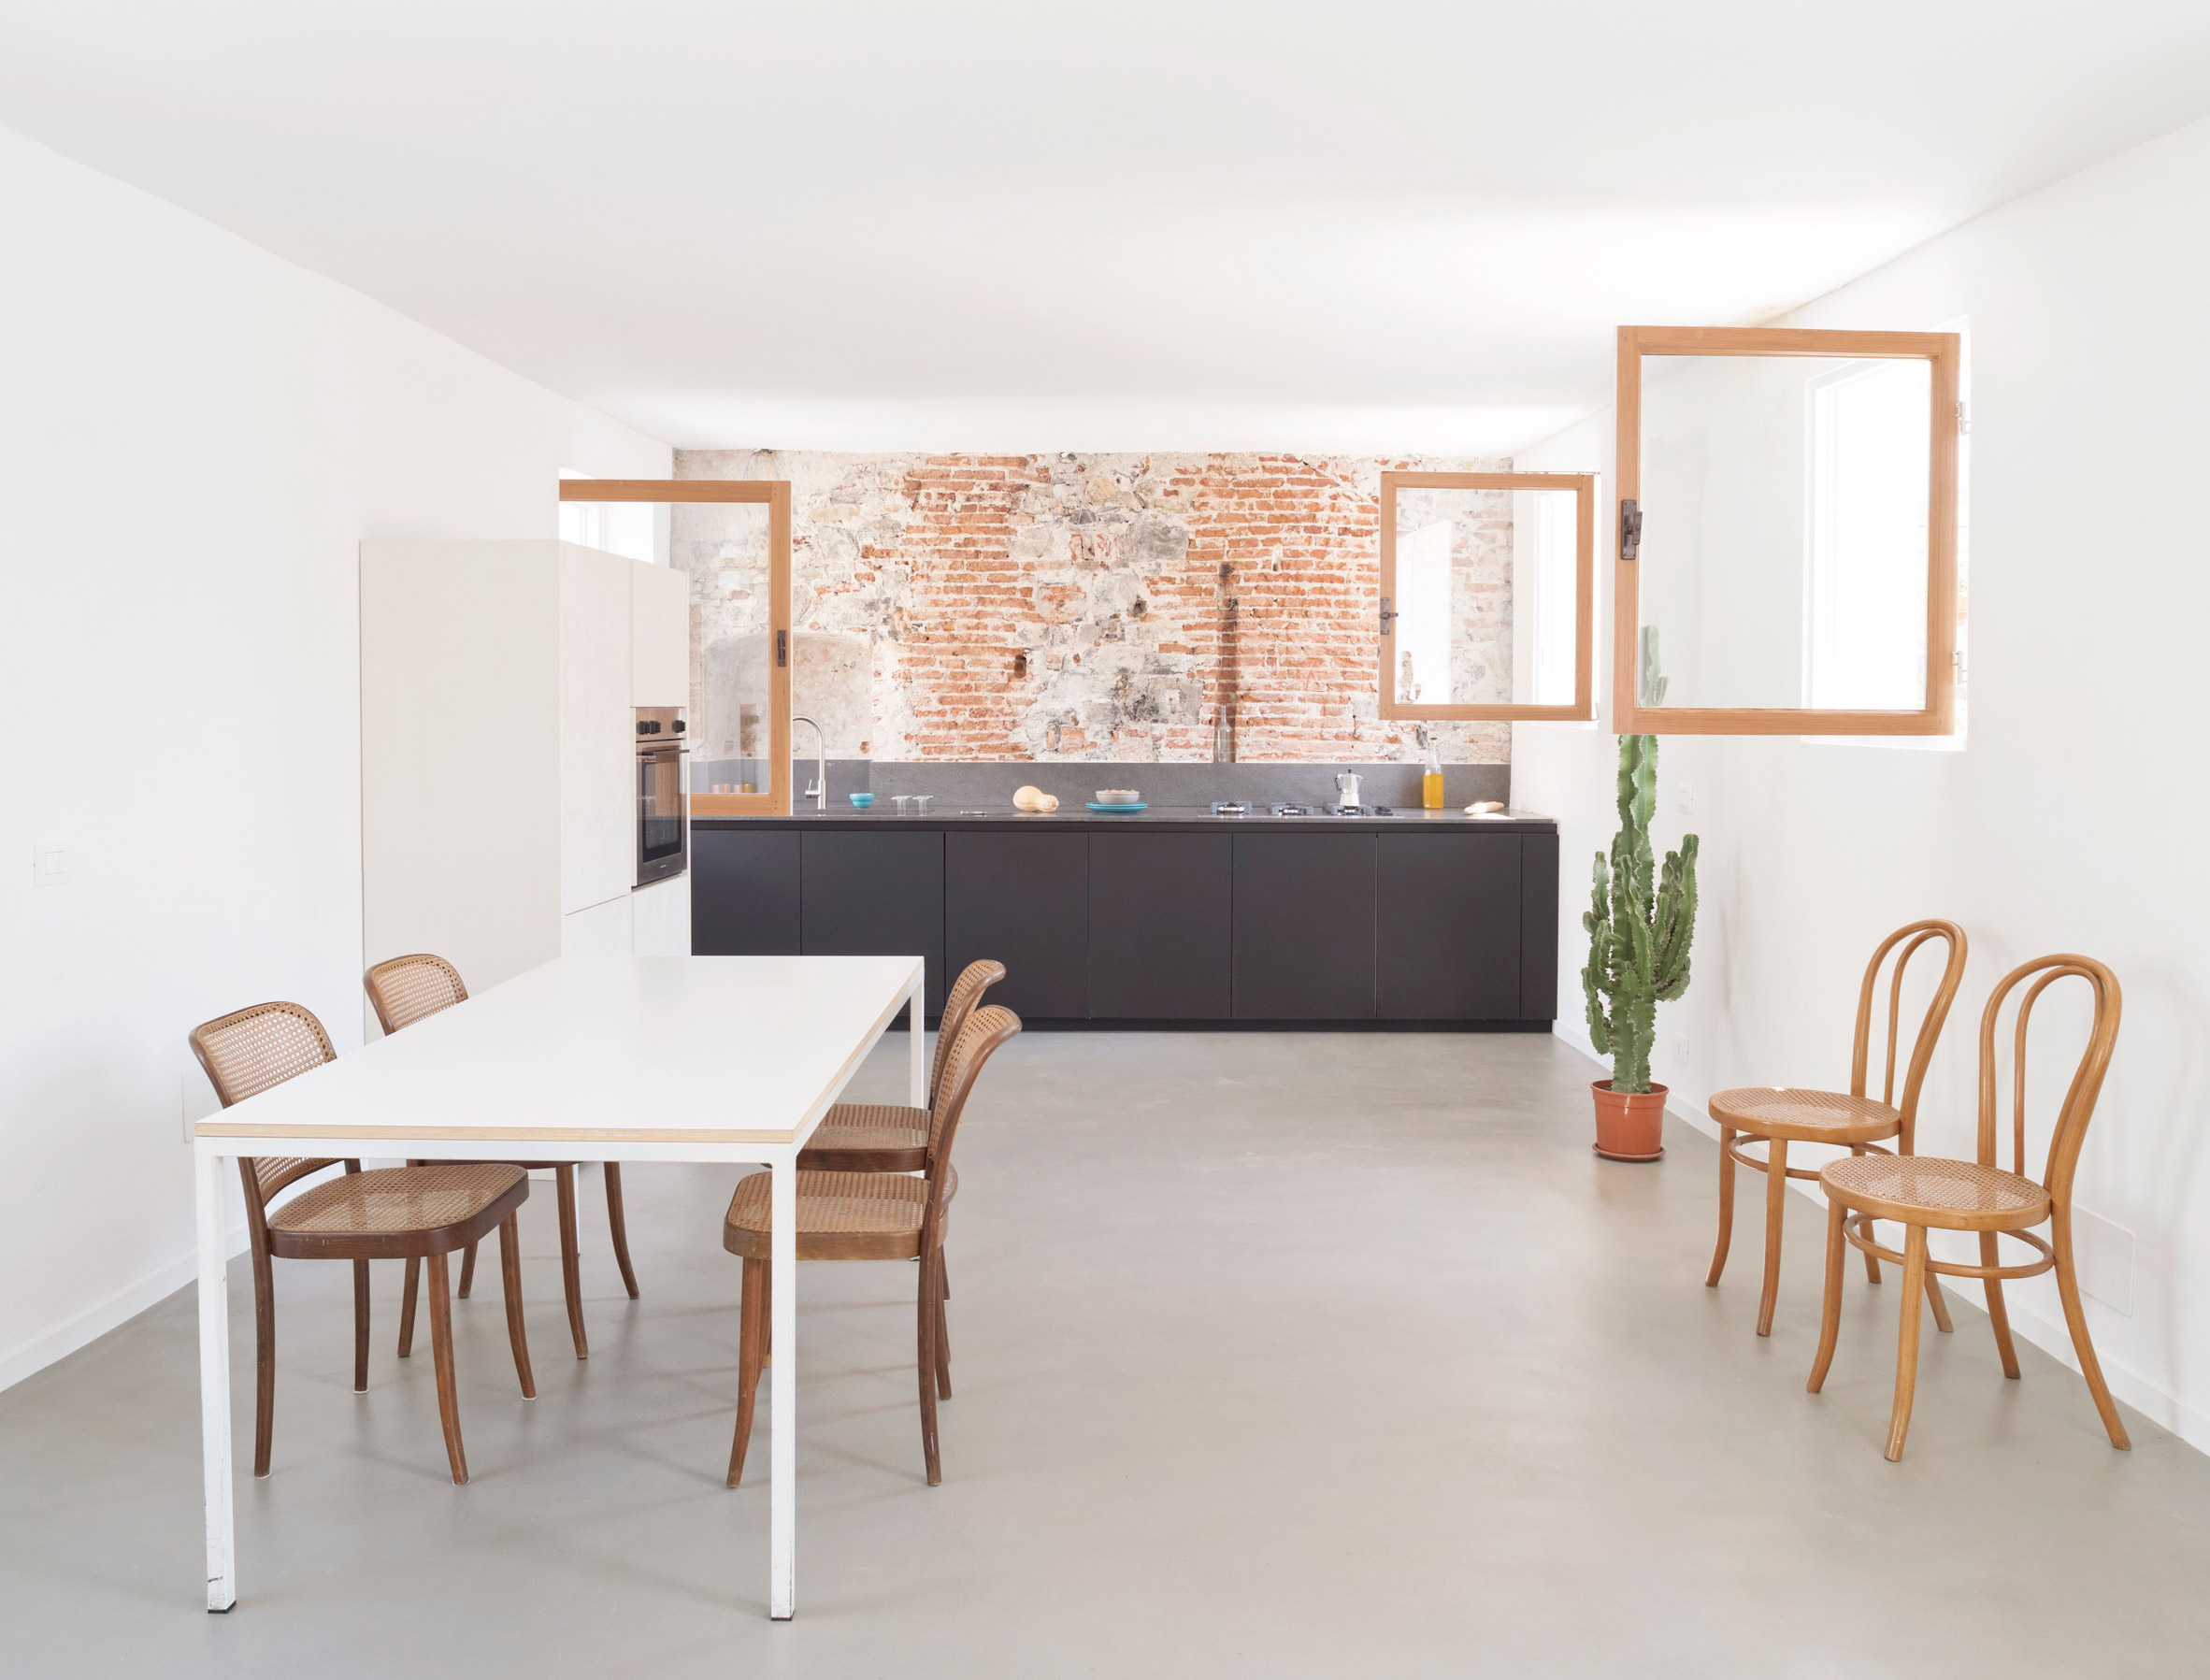 Kitchen in House for a Sea Dog in Genoa by Dodi Moss